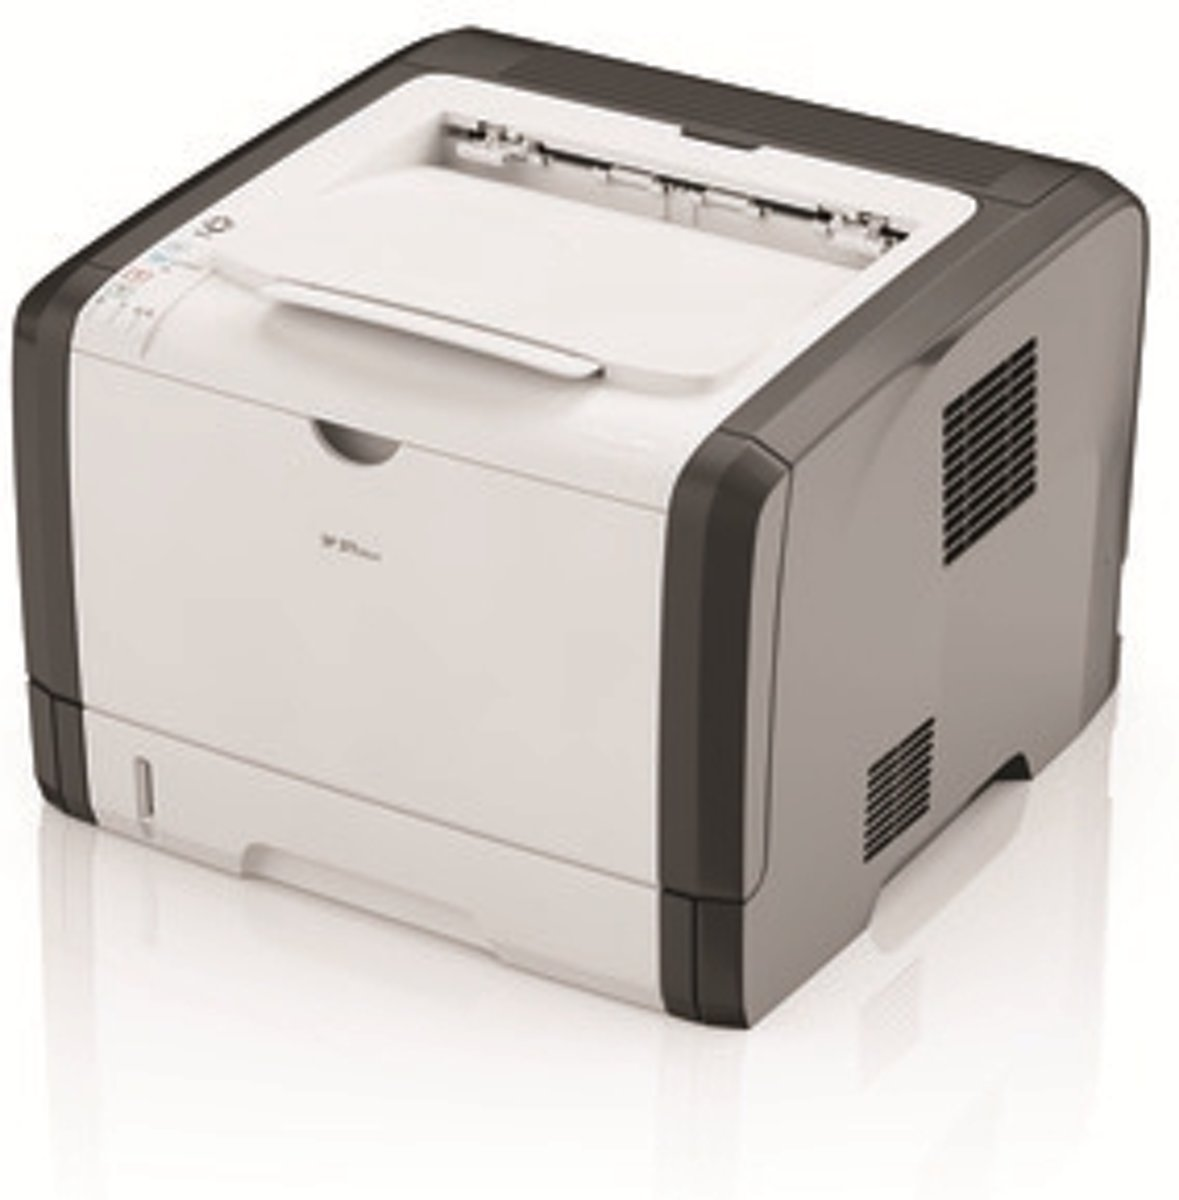 SP 377DNWX BLACK WHITE PRINTER